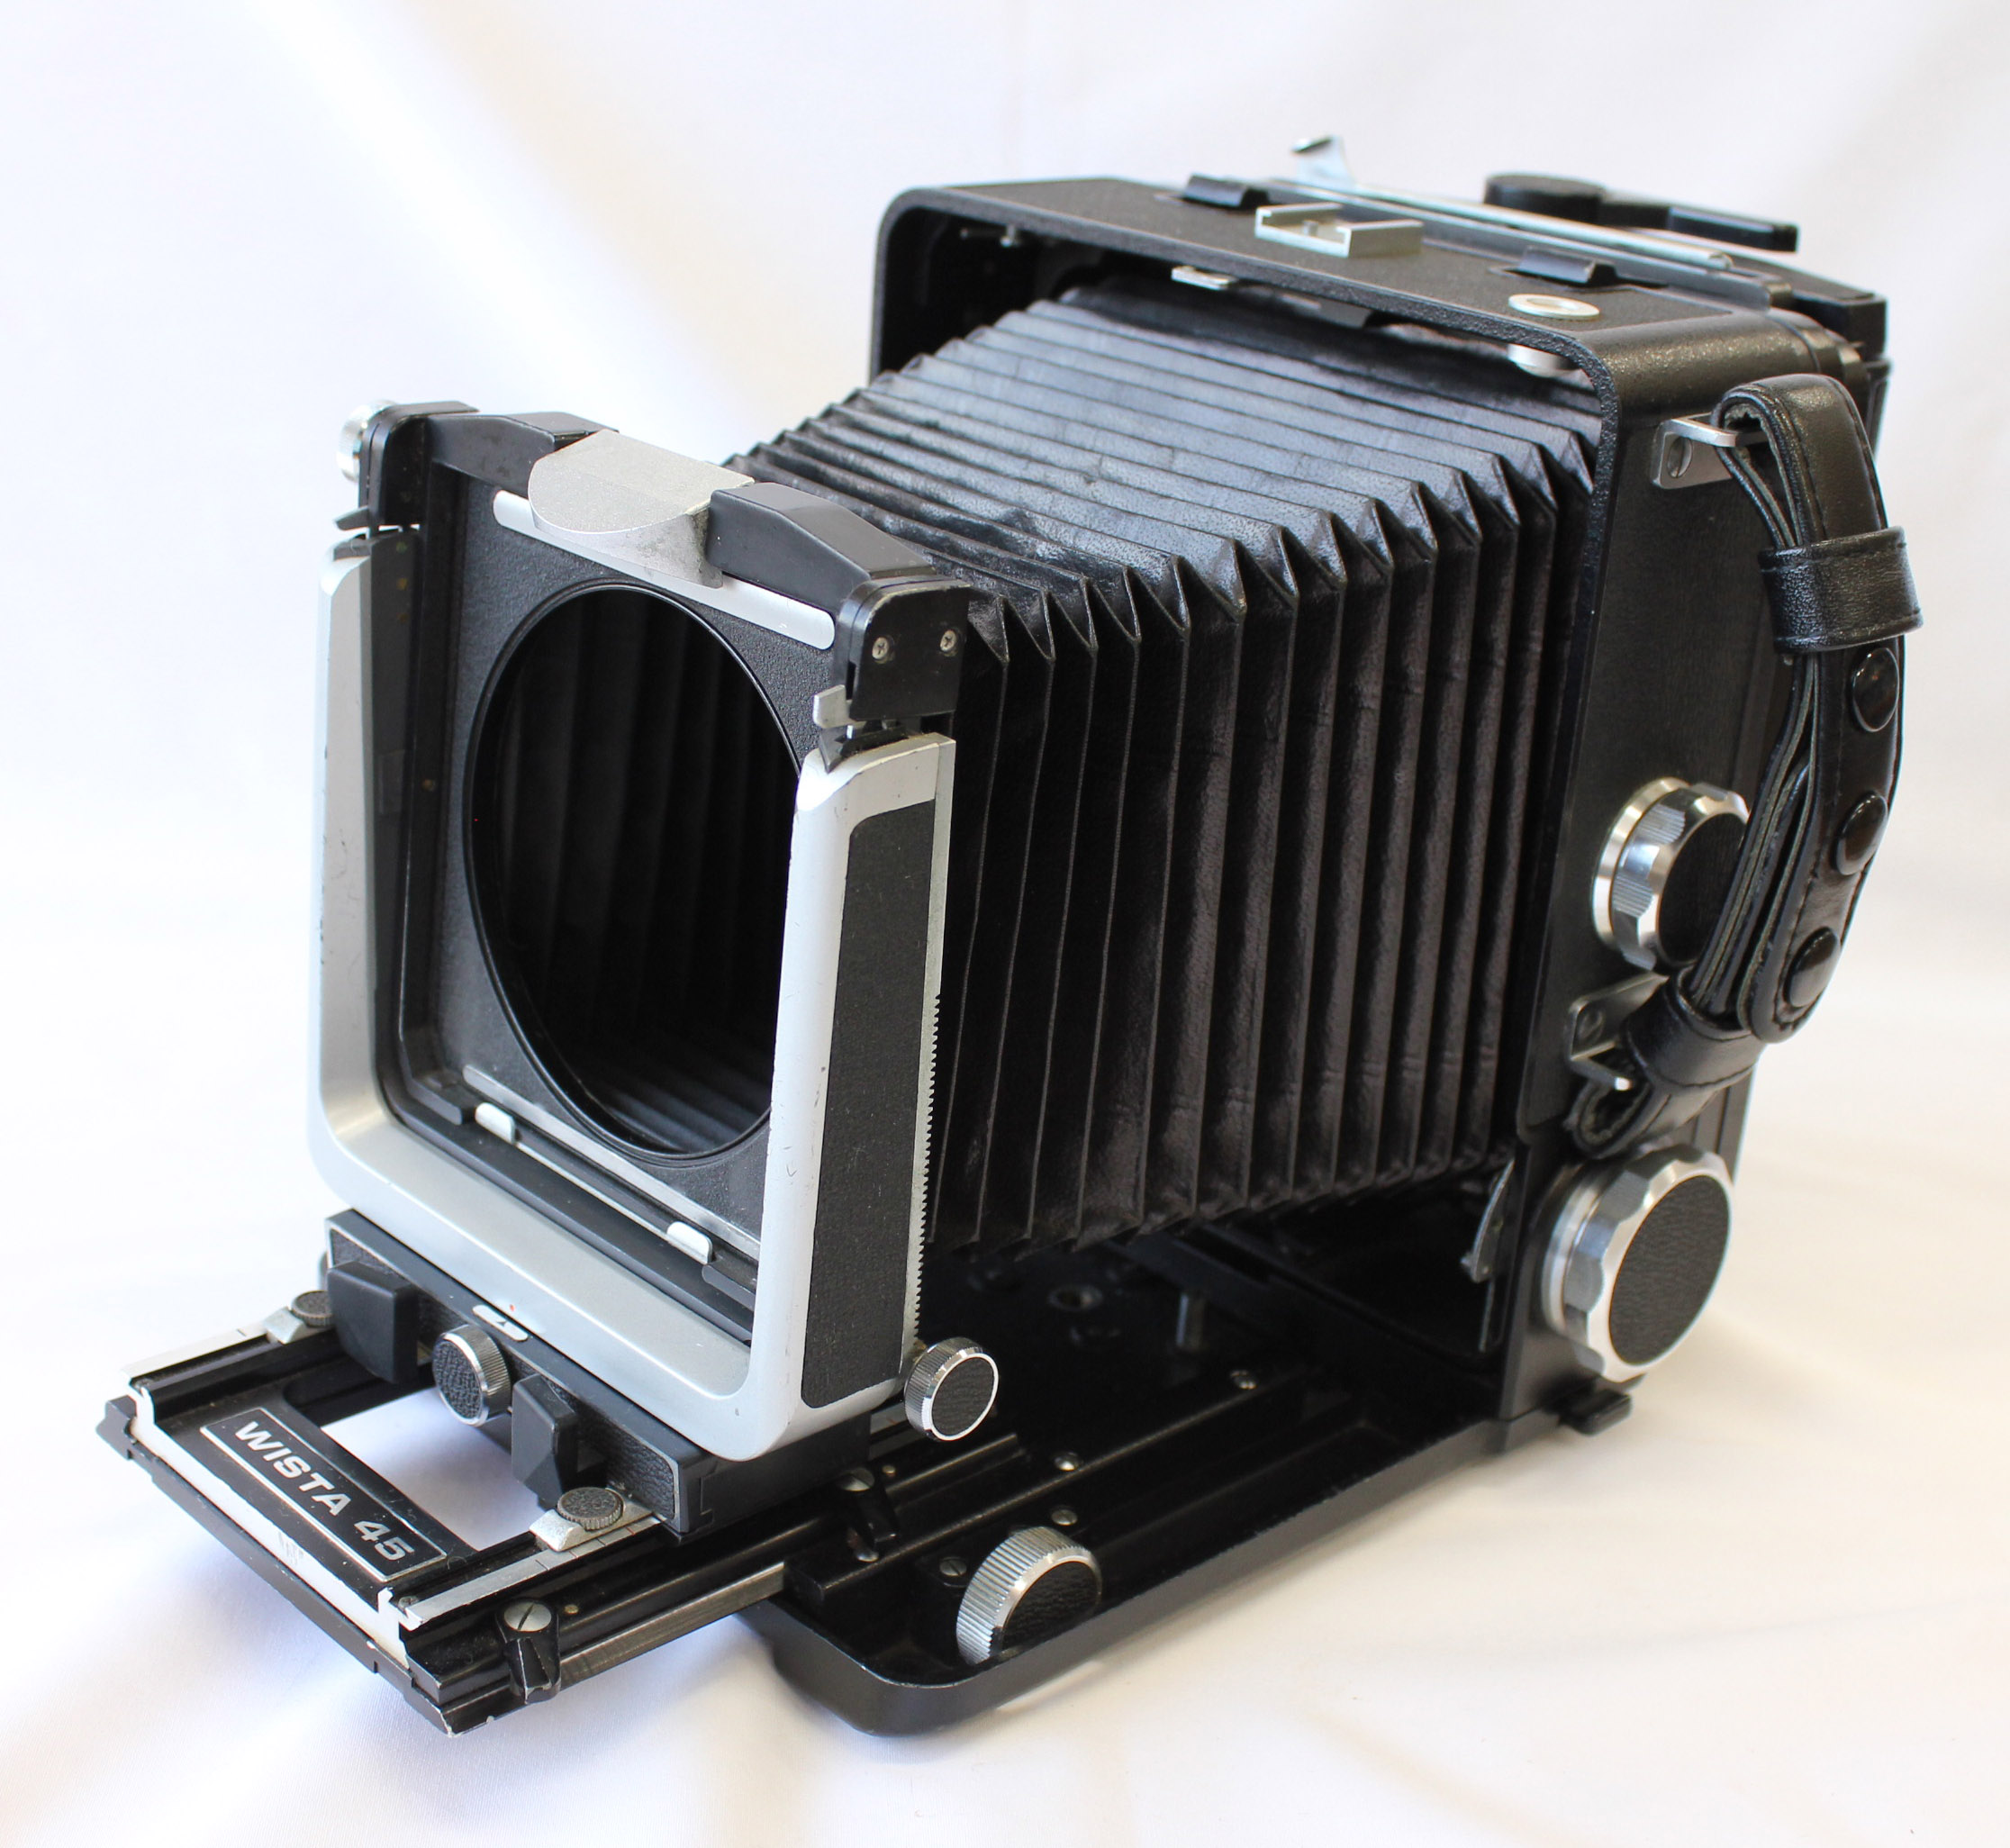 Japan Used Camera Shop | [Exc++++] Wista 45 45D 4x5 Large Format Camera w/ 6x9 Roll FIlm Holder & Quick Roll Slider from Japan